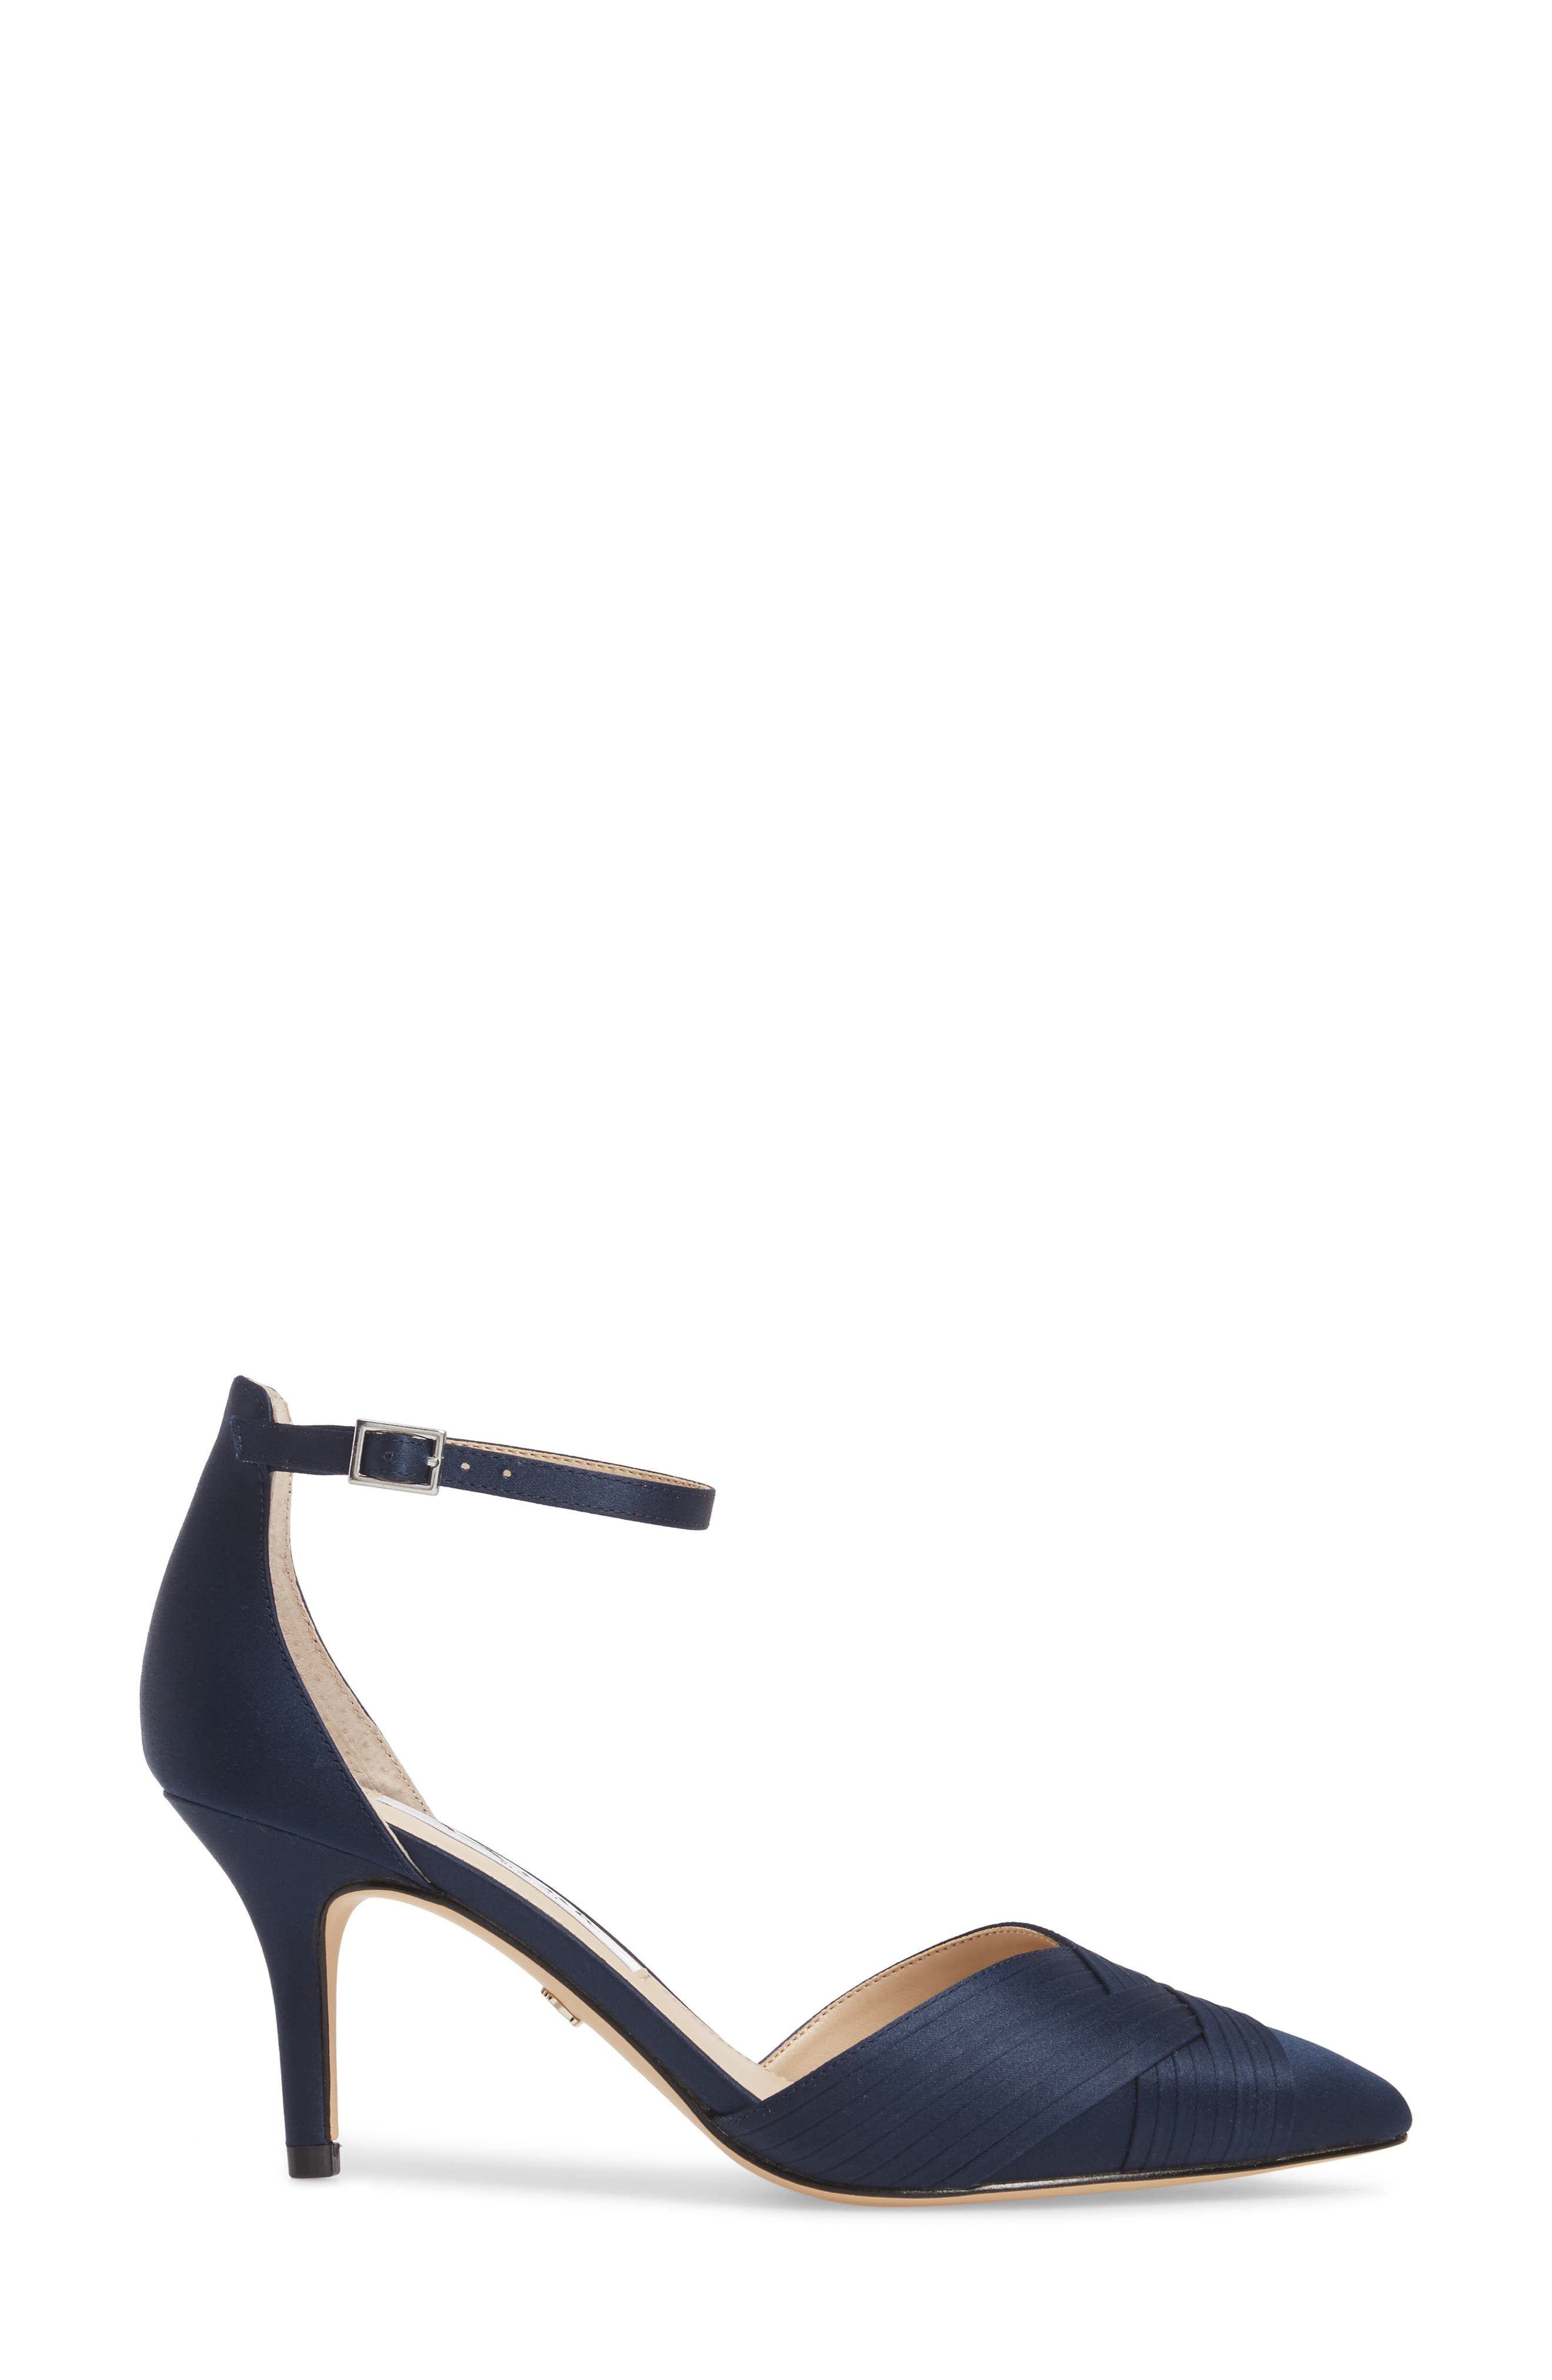 Teriann Ankle Strap Pump,                             Alternate thumbnail 3, color,                             Navy Satin